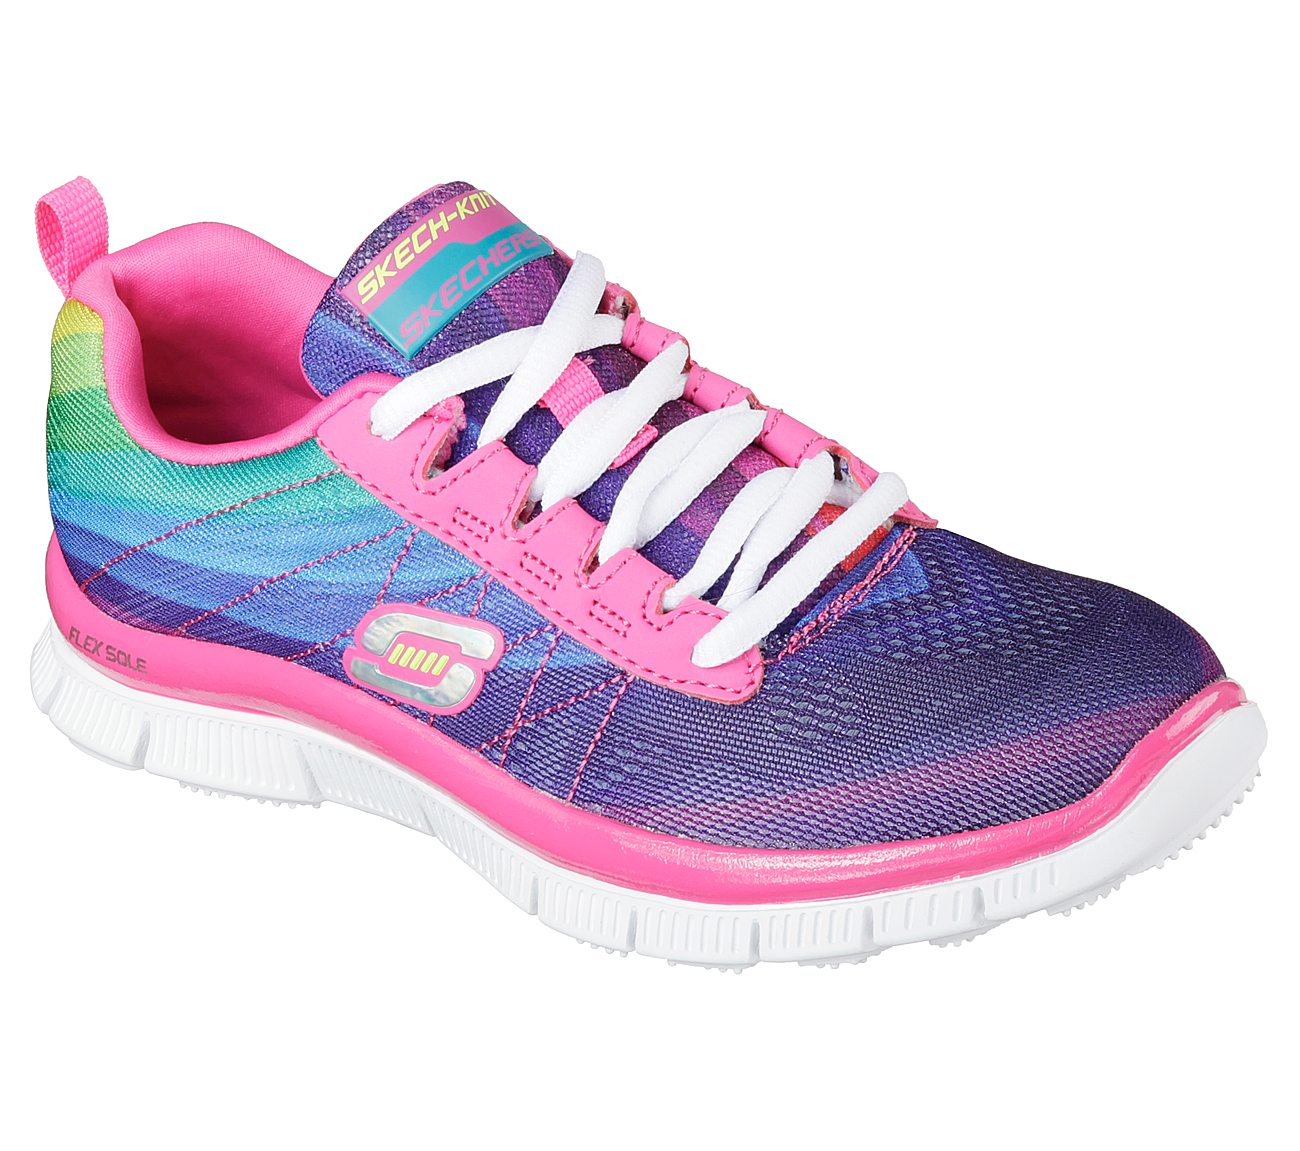 Buy SKECHERS Skech Appeal - Pretty Please Sport Shoes only  52.00 8e551eba57